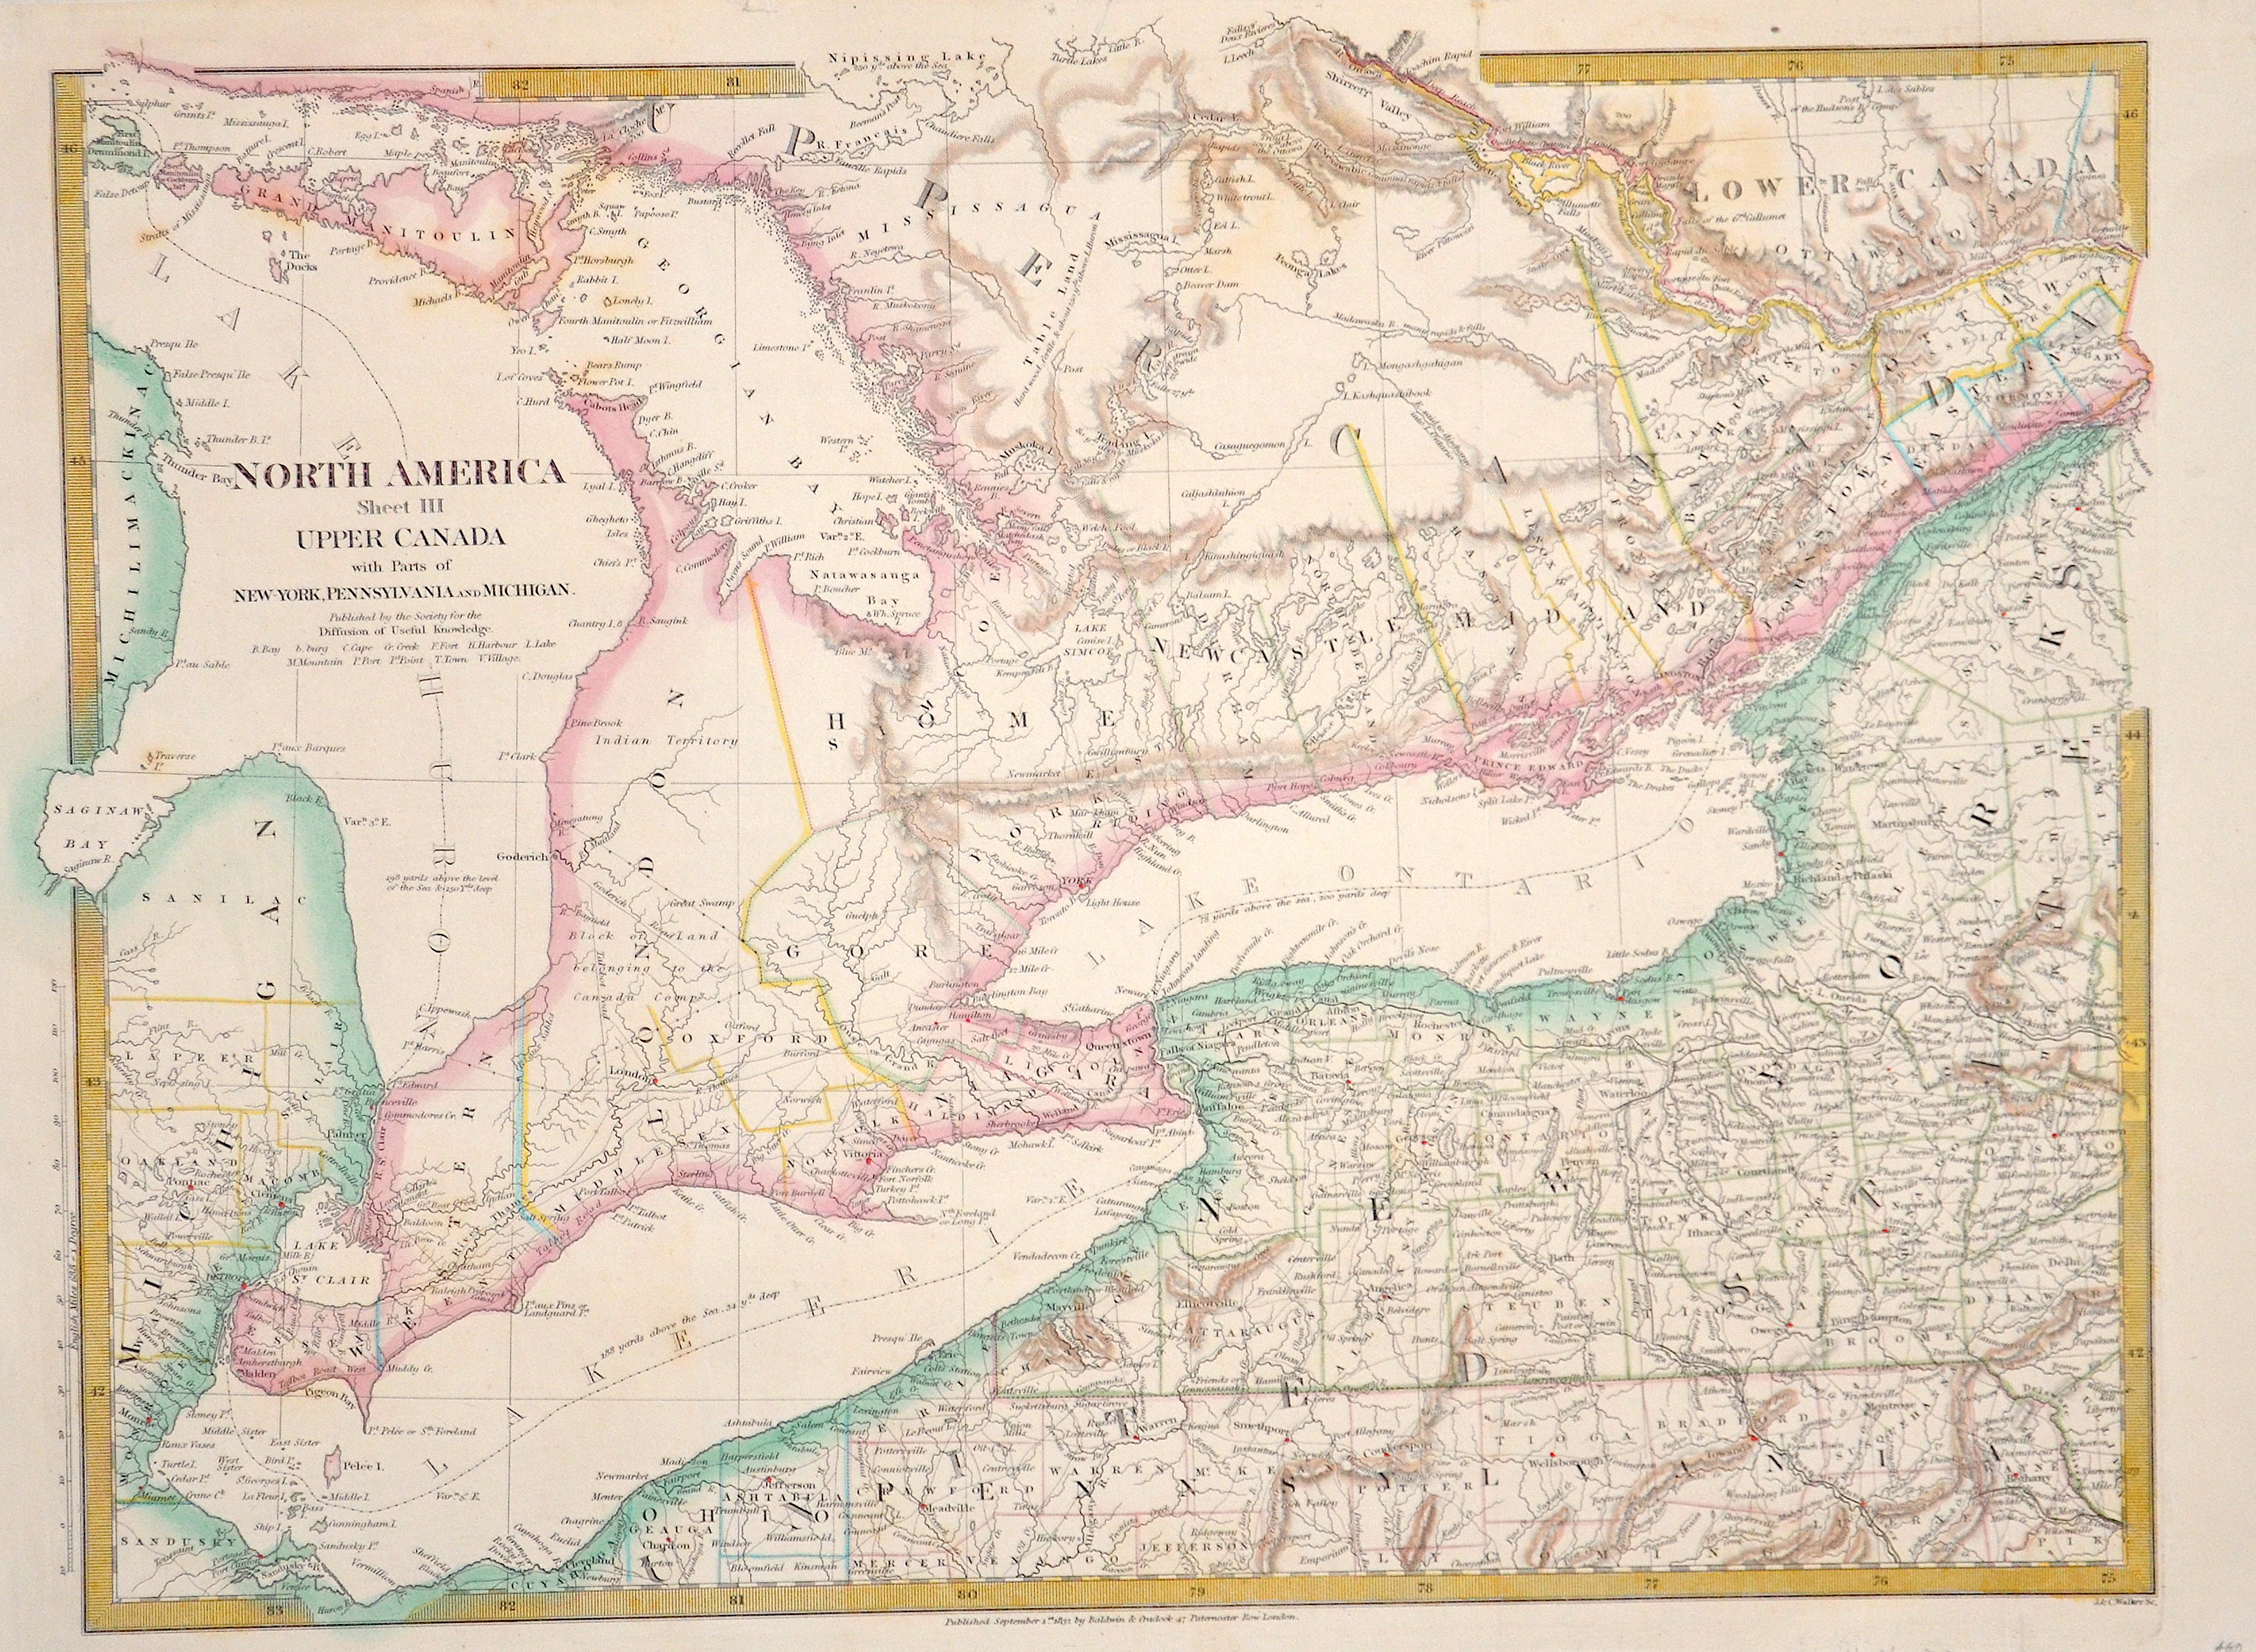 Walker  North America sheet III upper Canada with parts of New York, Pensyvannia and Mitchigan